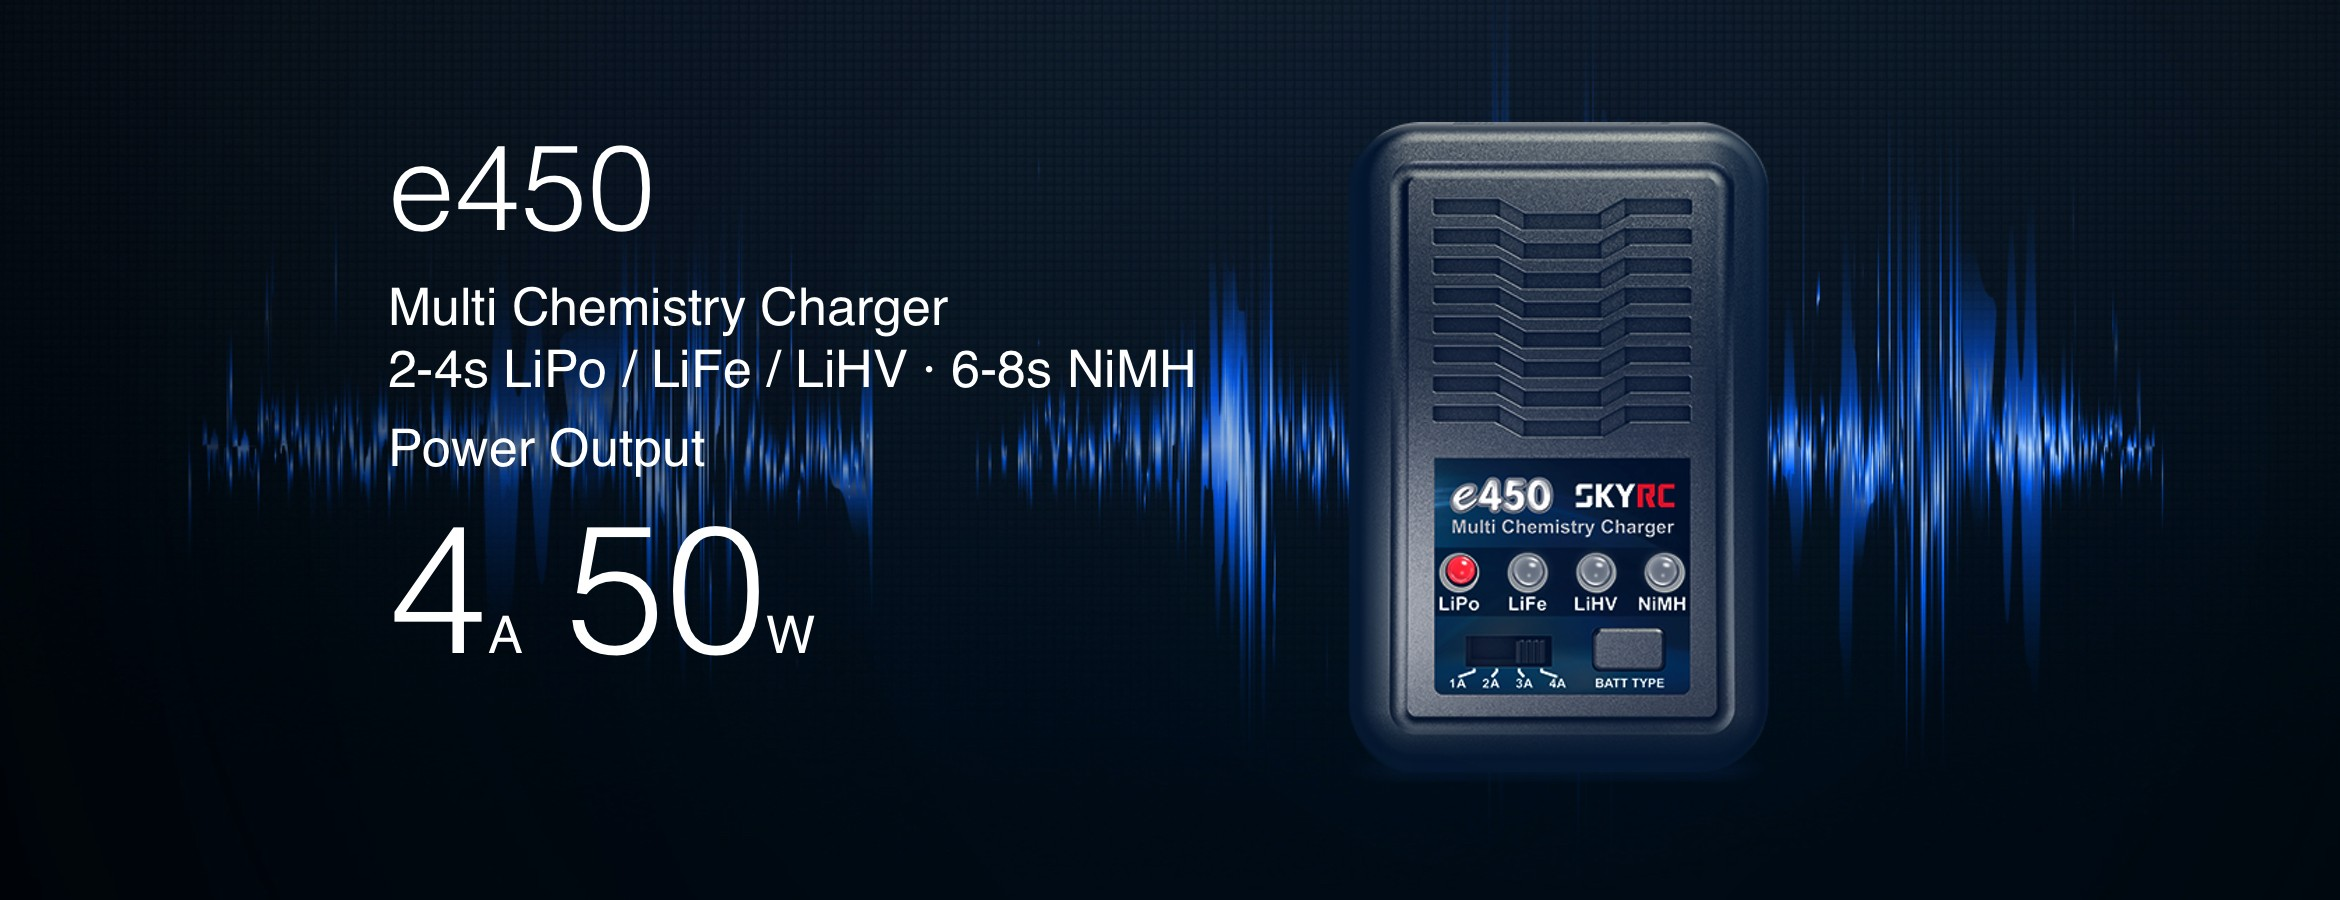 E450 Charger